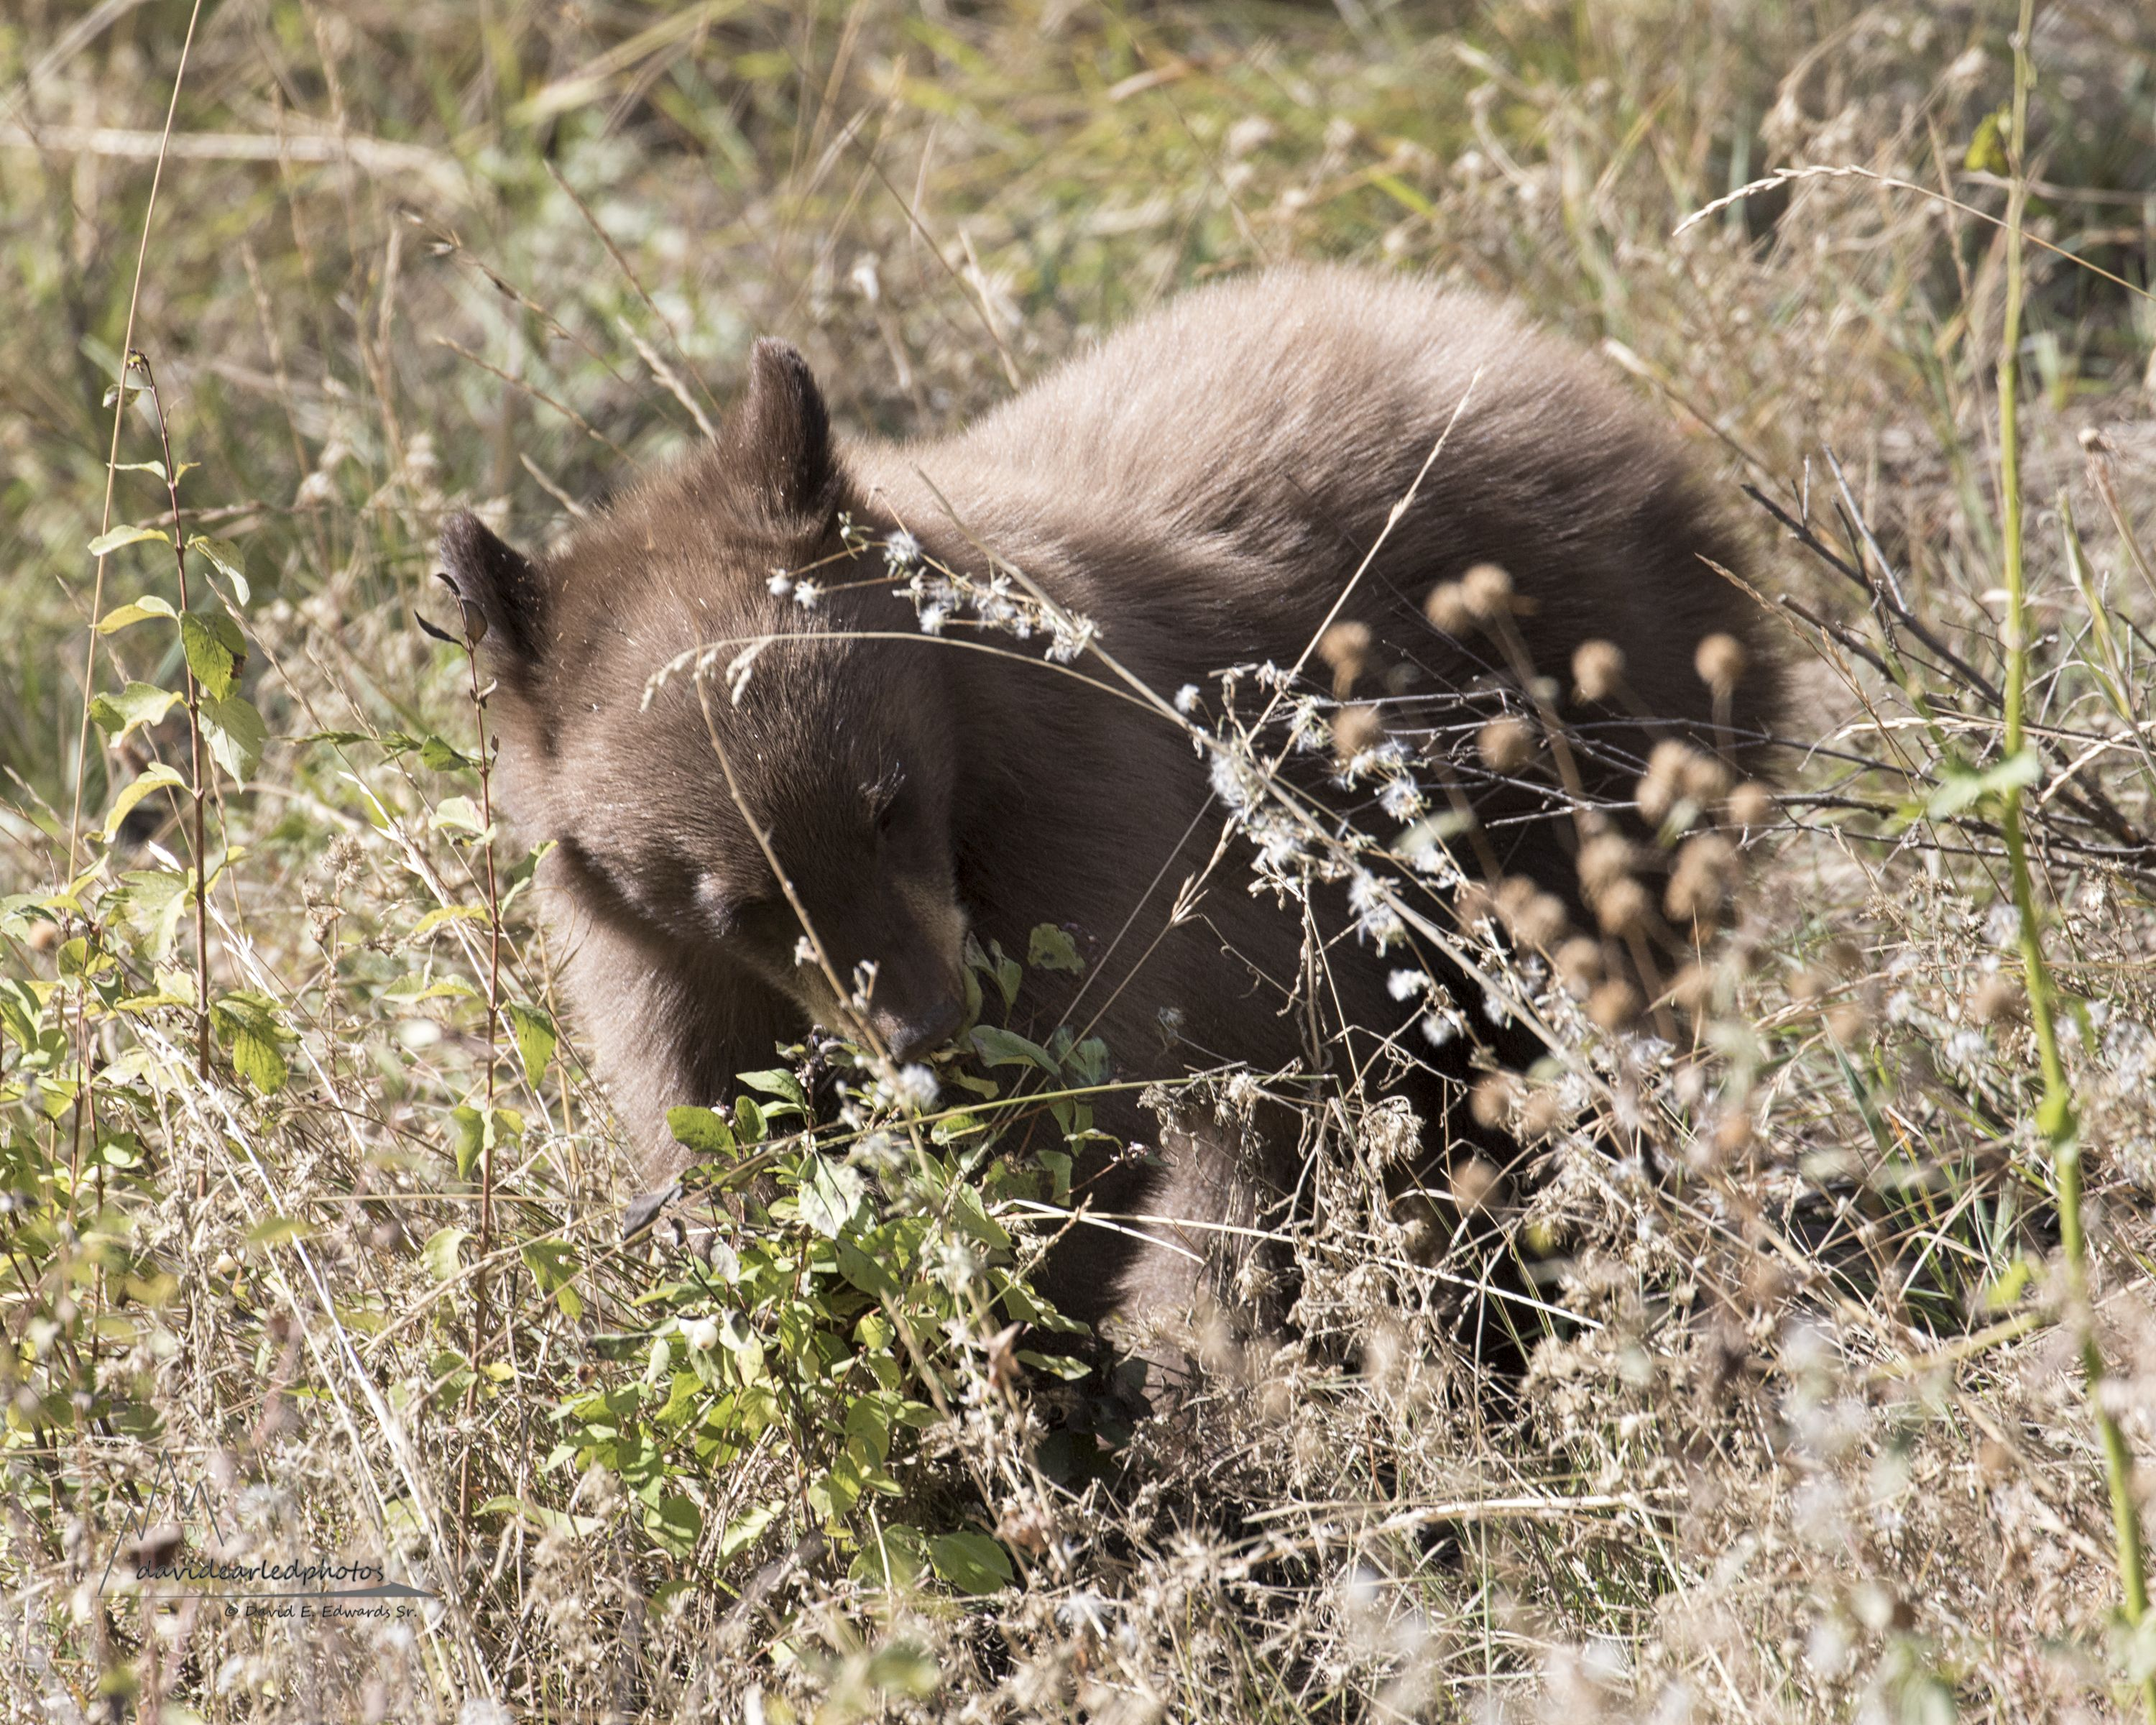 Cinnamon bear eating plant